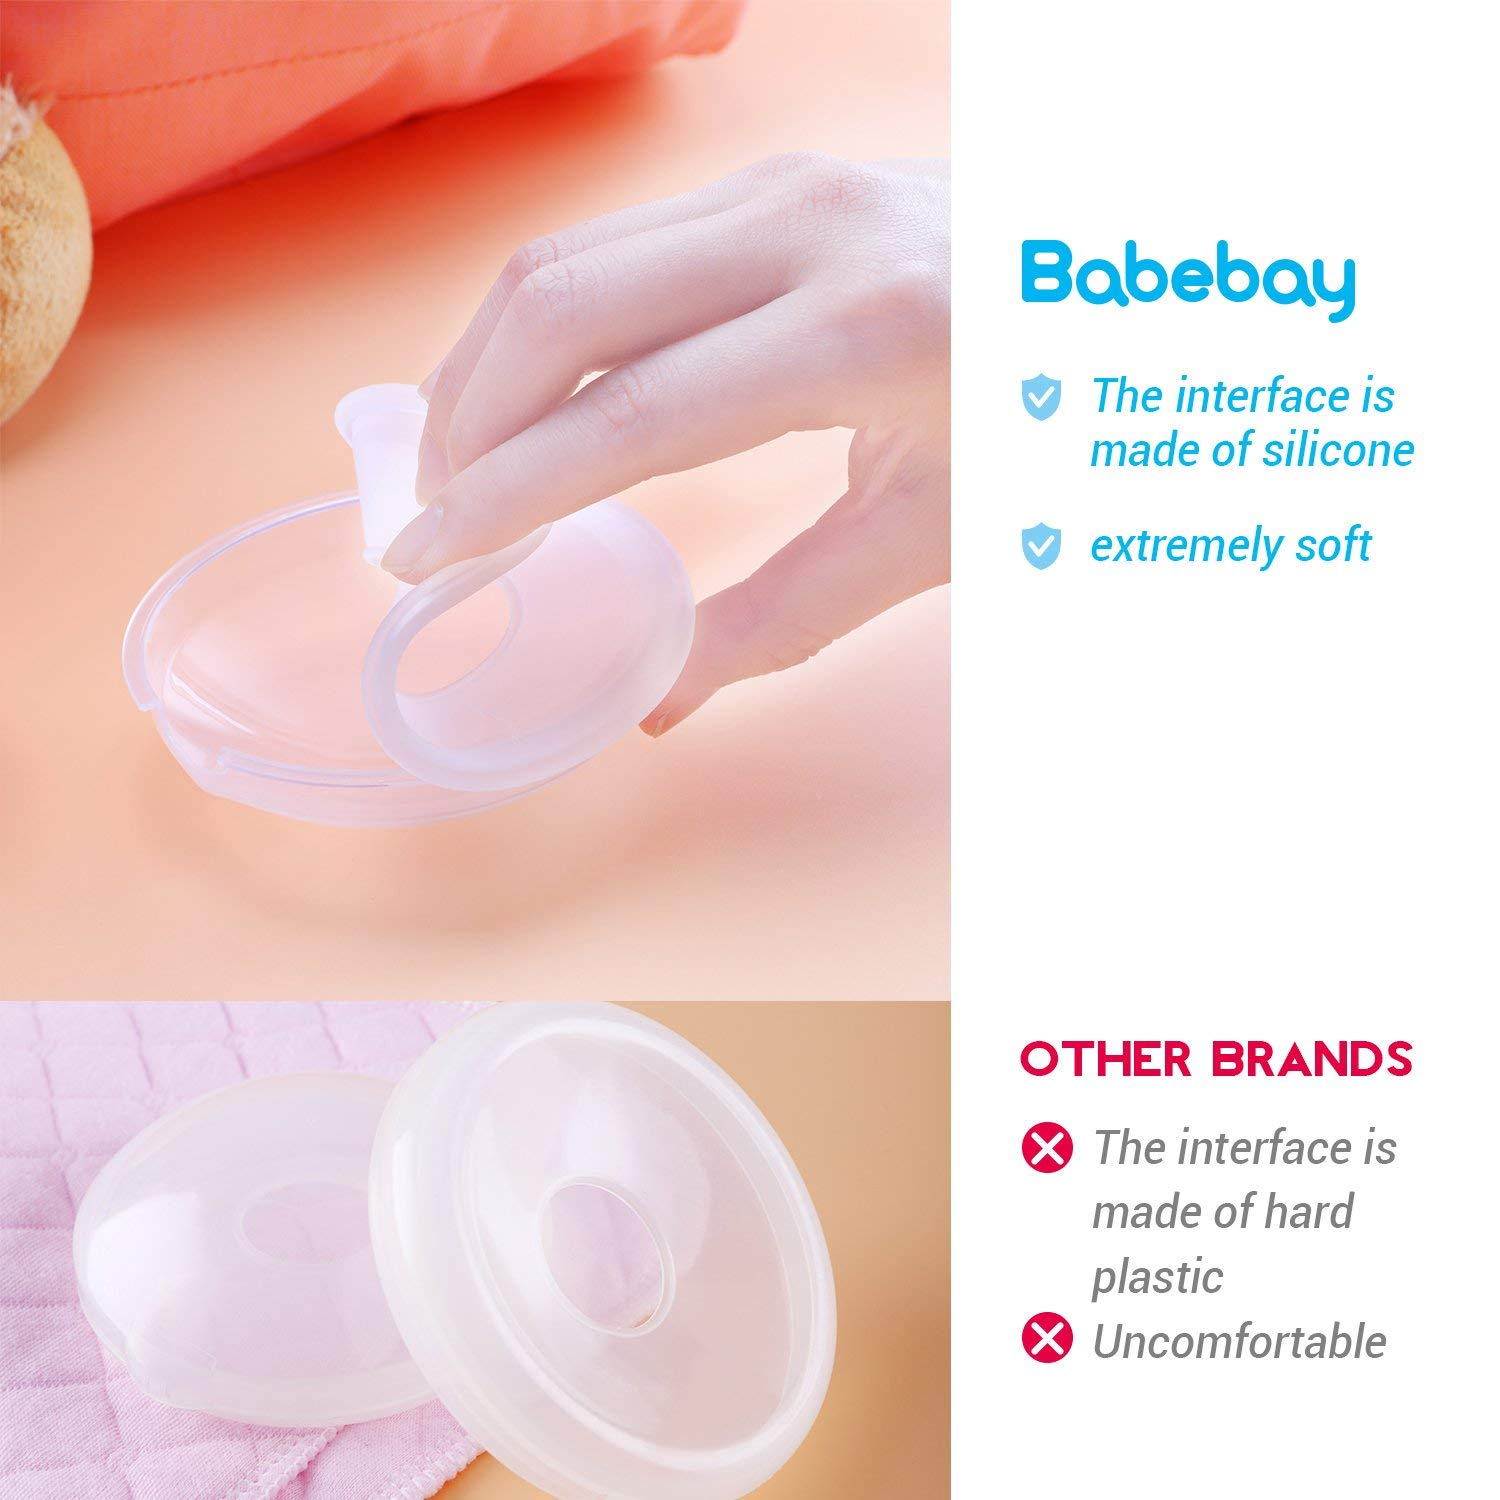 Breast Shells Nursing Cups Milk Saver Protect Sore Nipples for Breastfeeding Collect Breastmilk Leaks for Nursing Moms Soft and Flexible Silicone Material Reusable 2 Pack